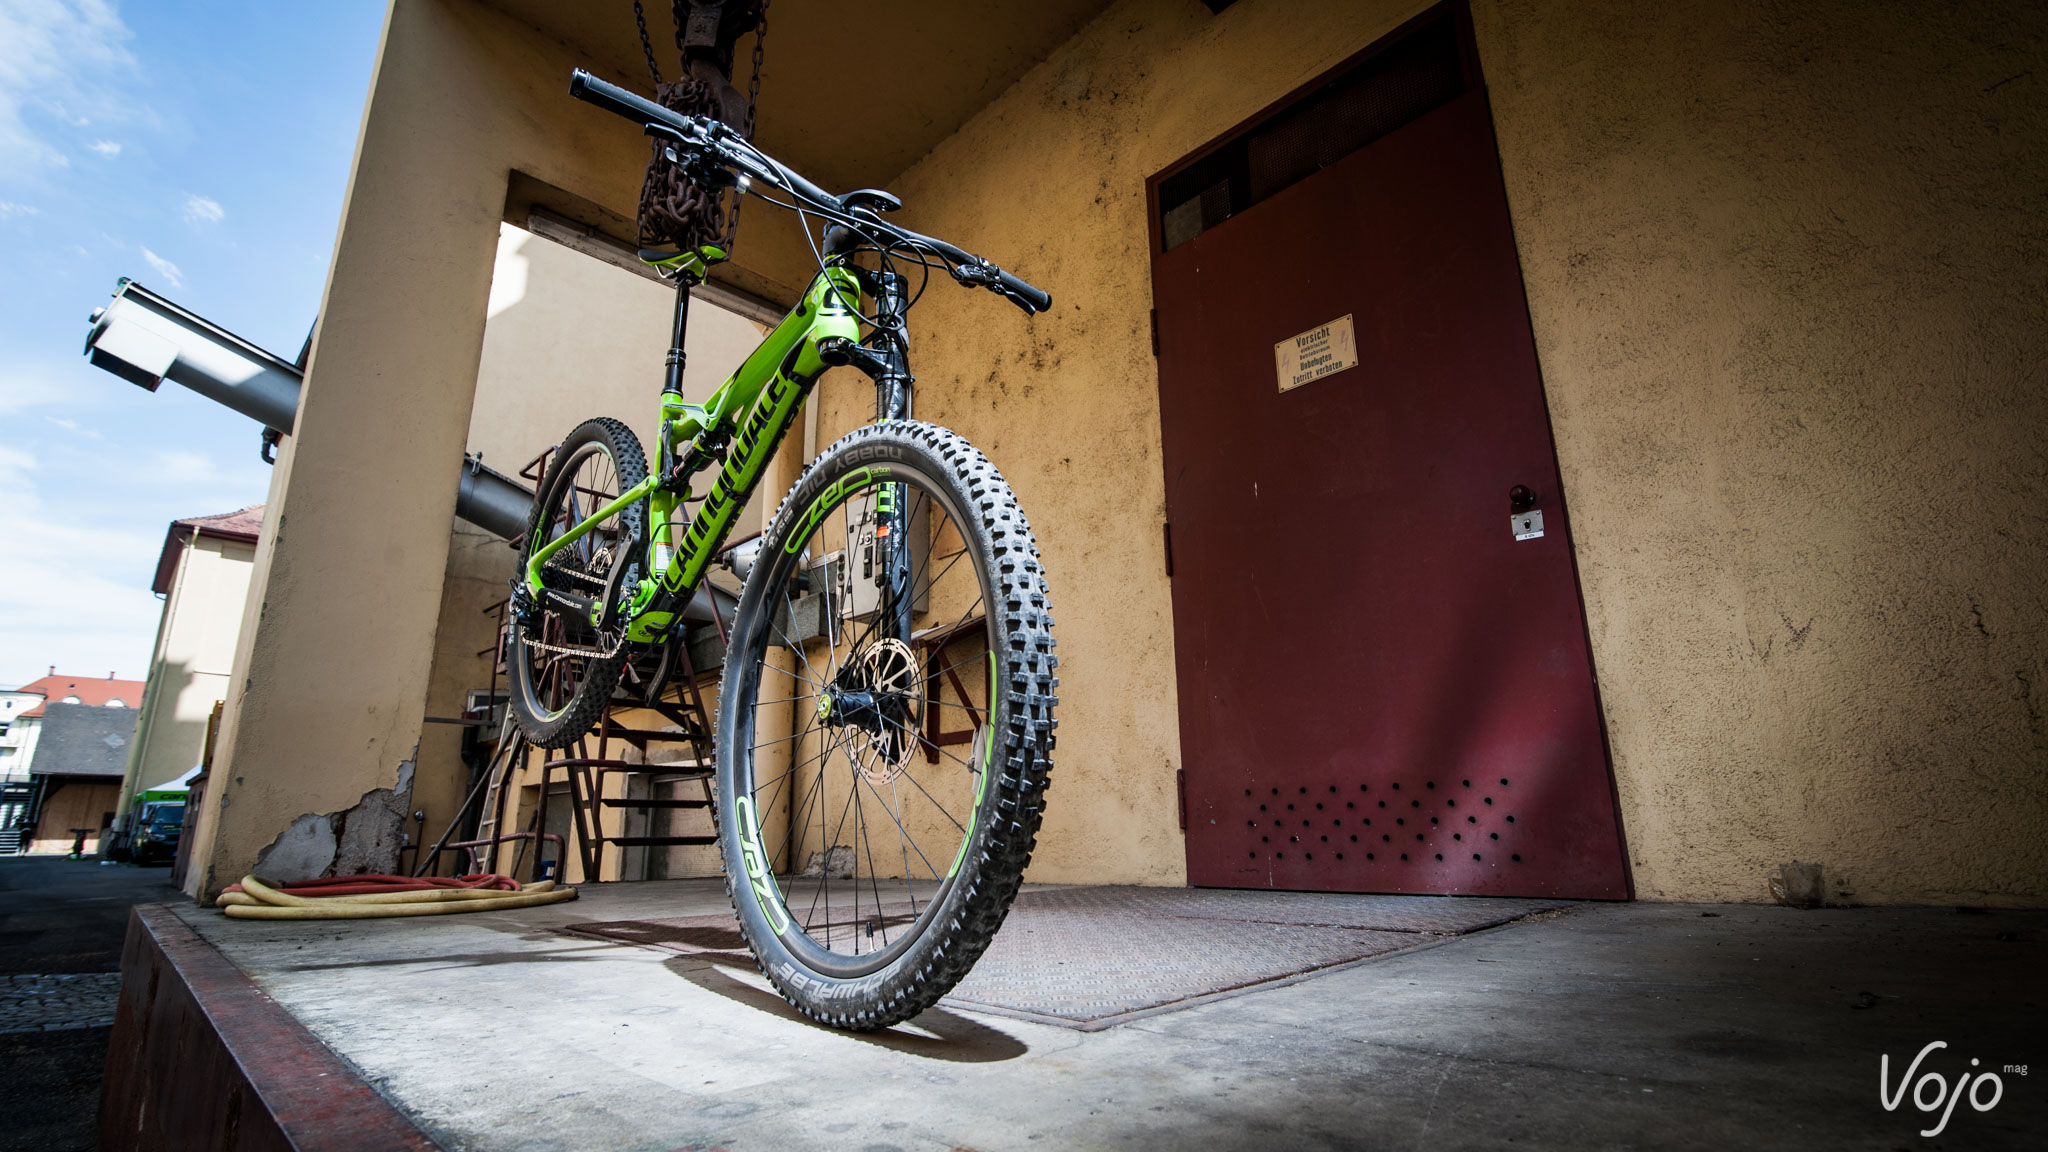 Cannondale-habit-2016-Hi-mod-1-vojo-paul-humbert-first-ride-14